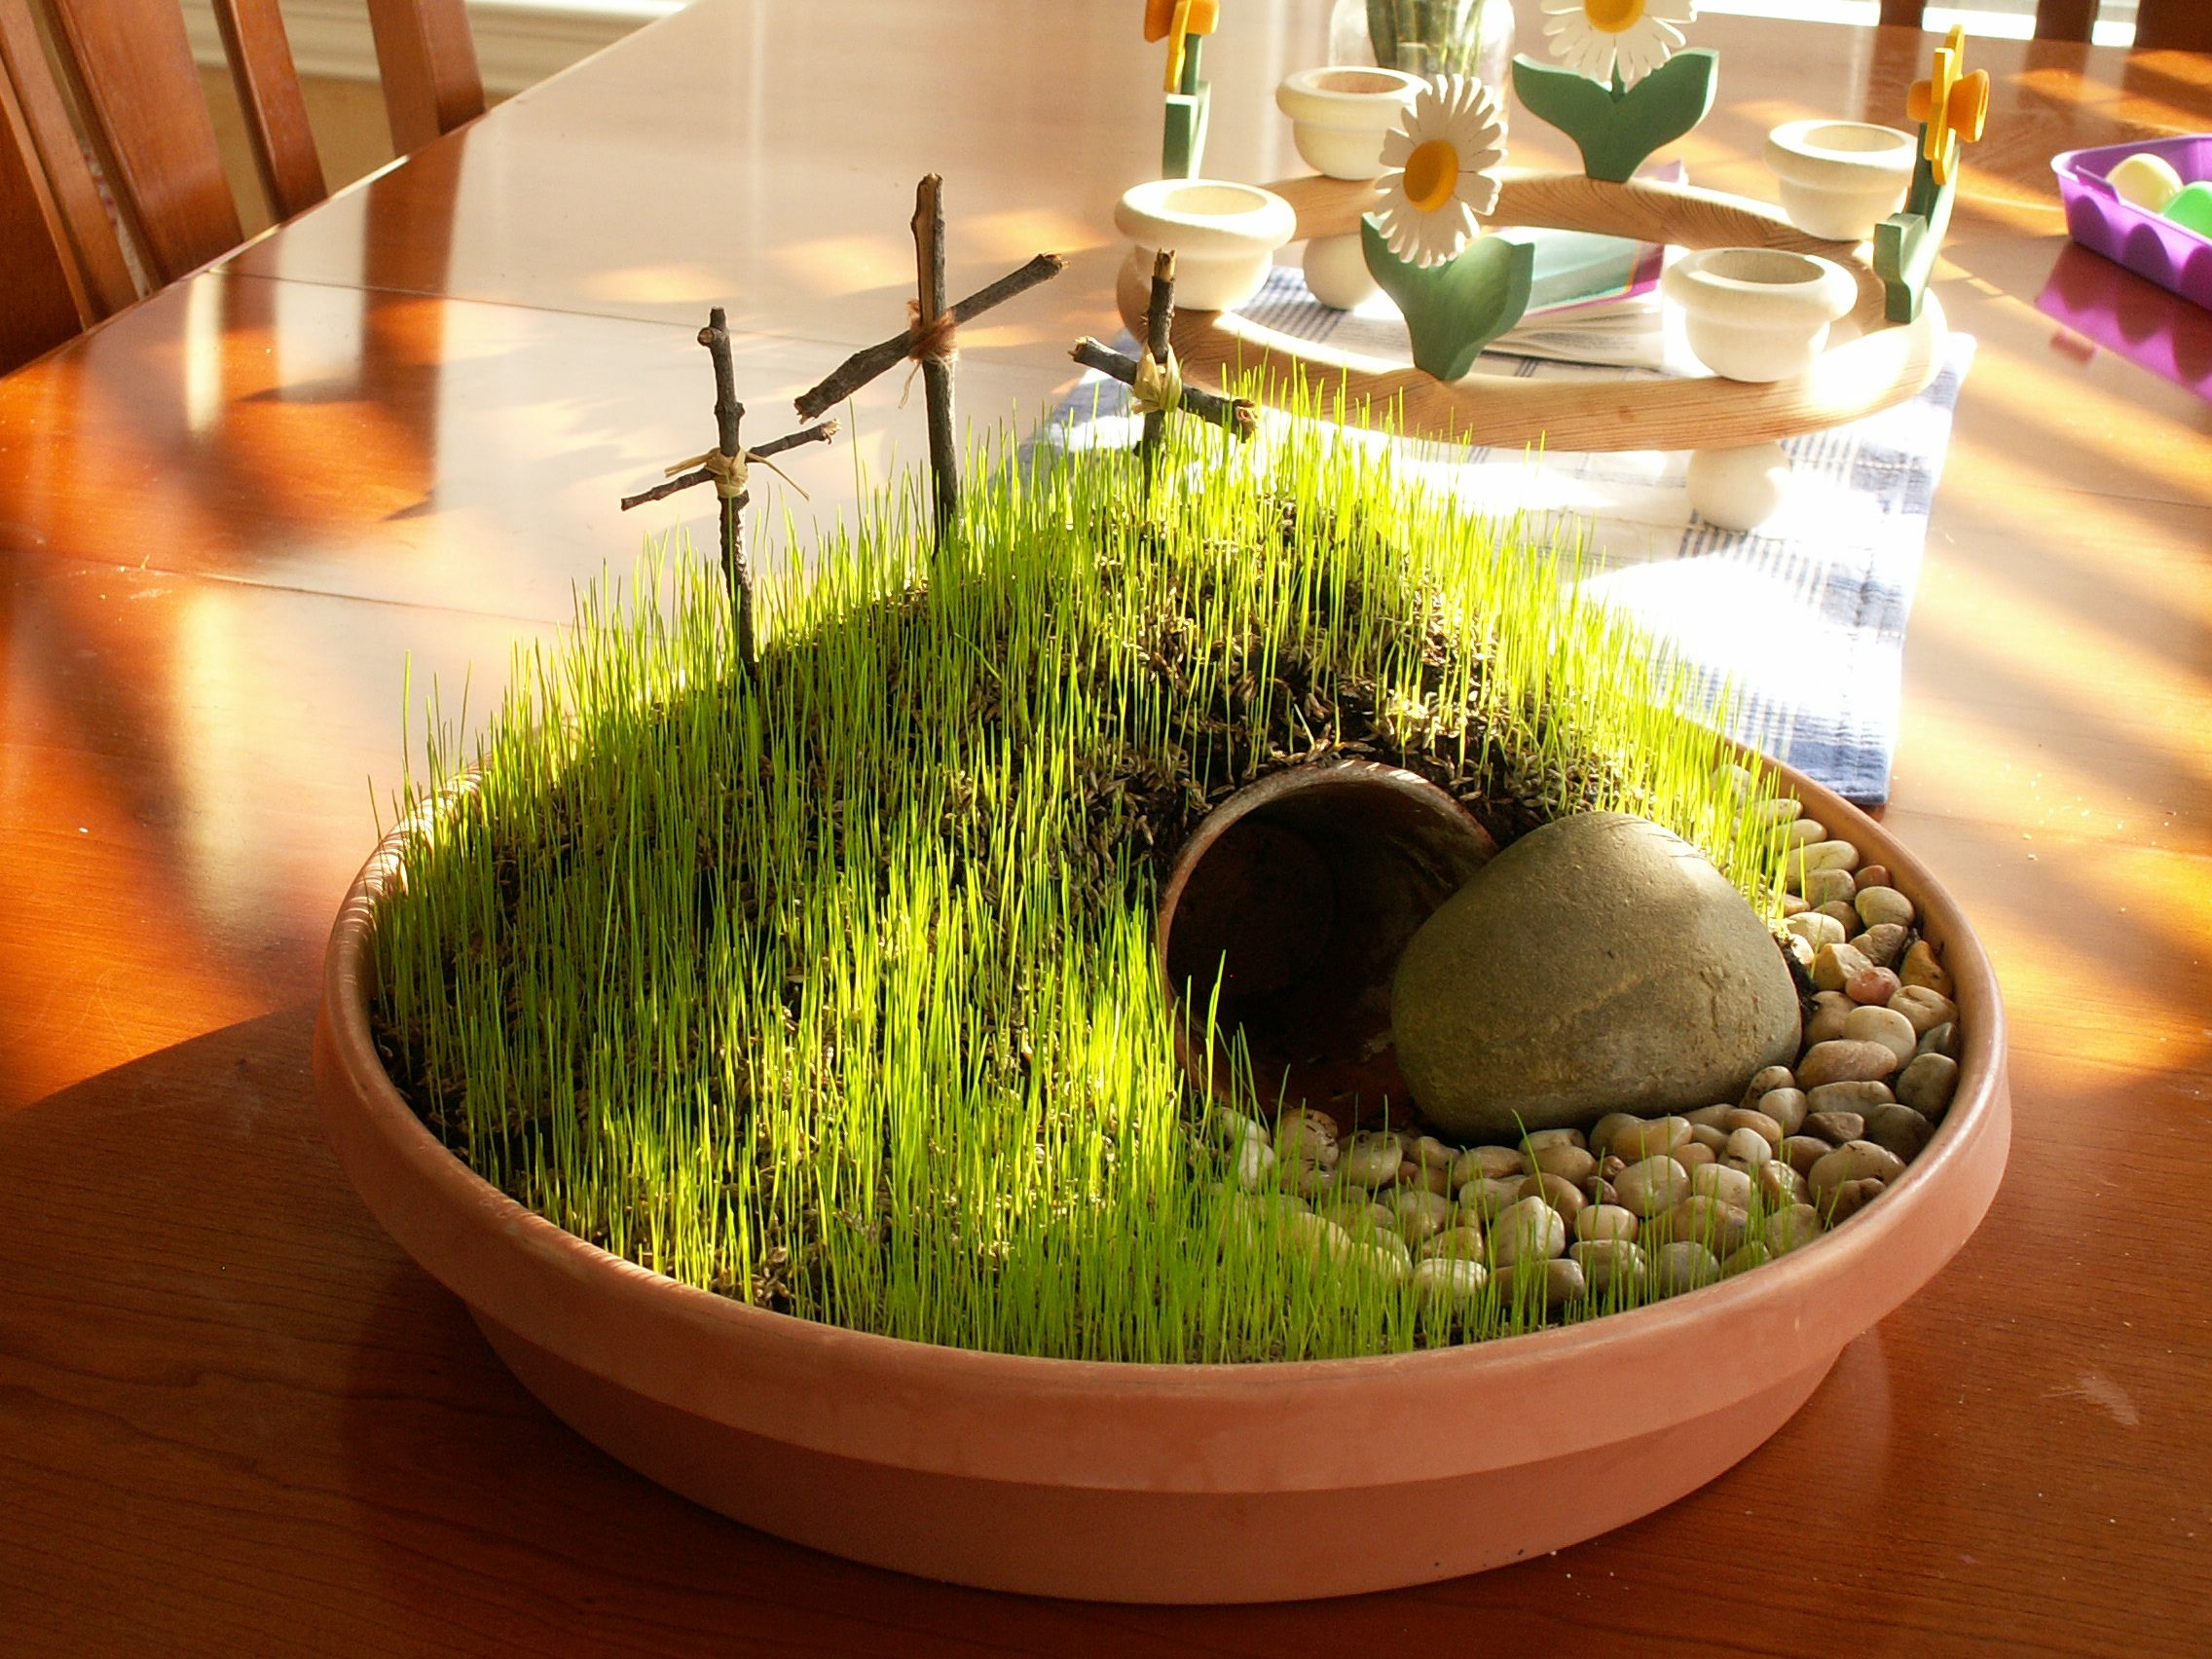 54 outstanding lenten arts and crafts ideas shade grass seed